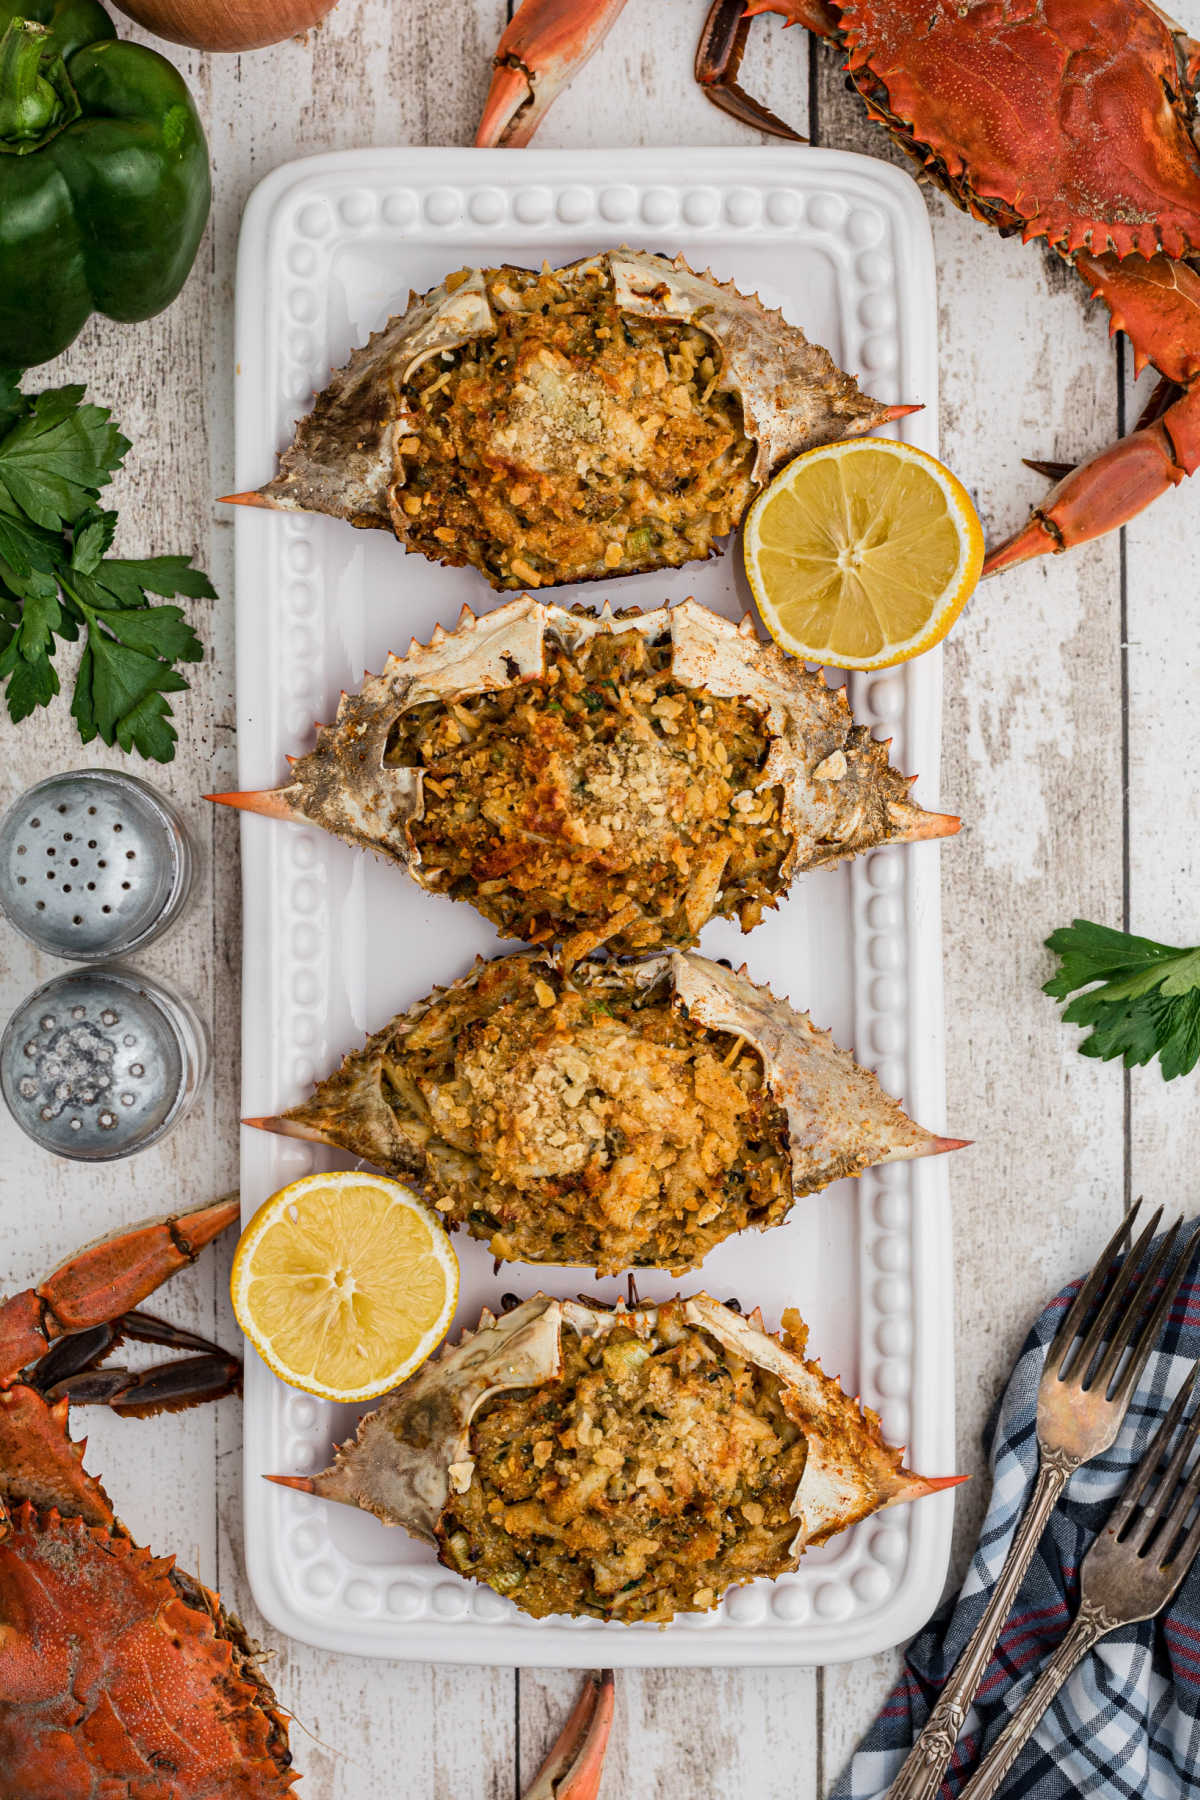 a long plate of stuffed crabs with some boiled crabs on the outside